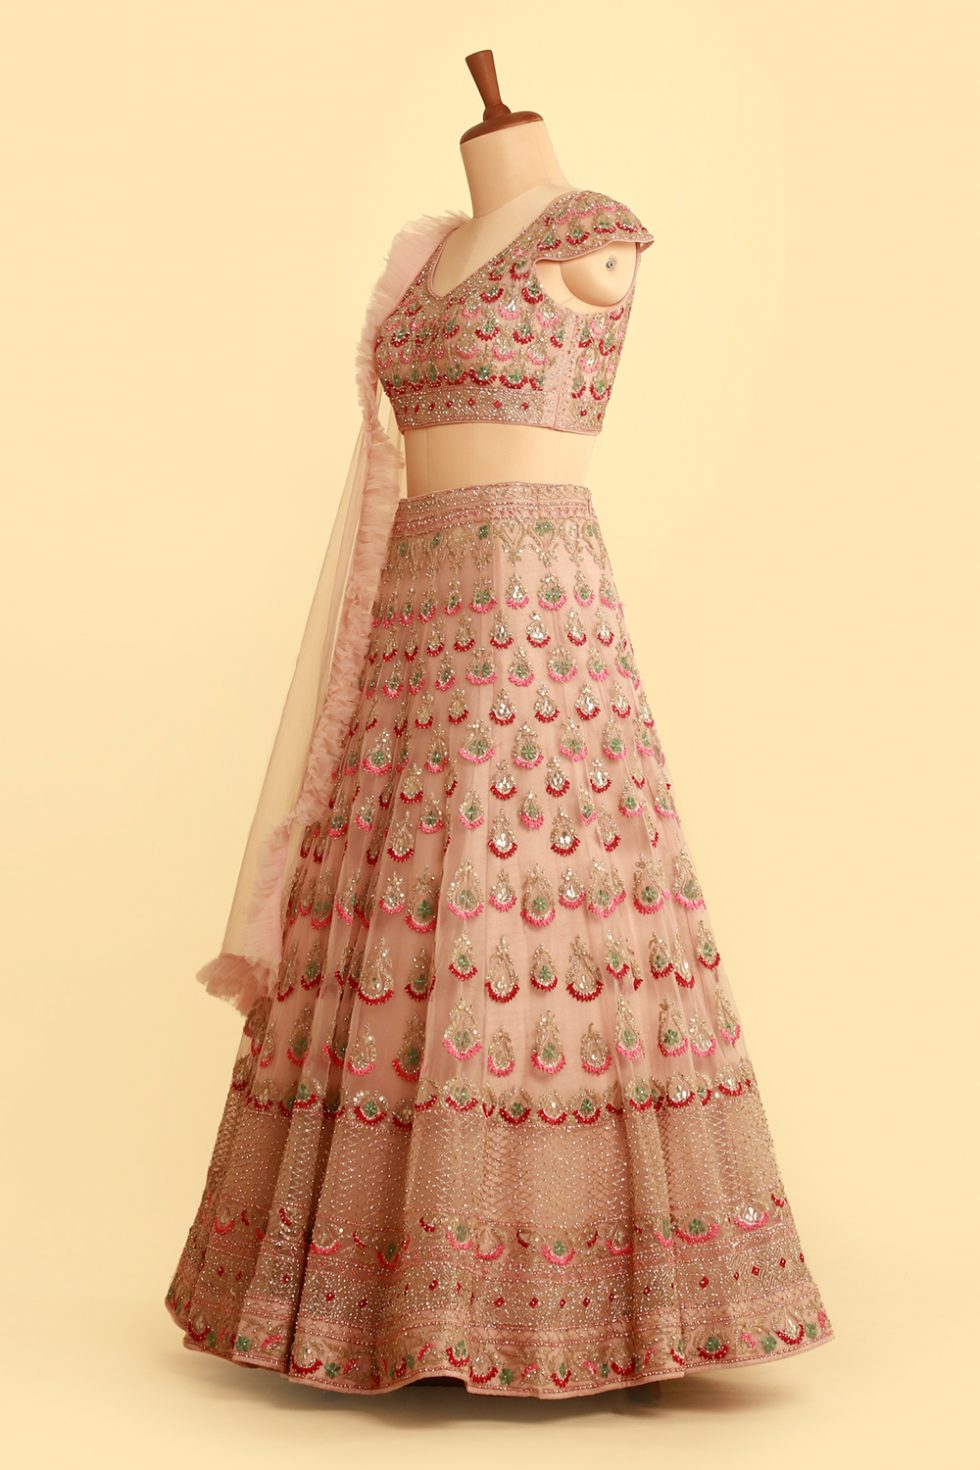 Blush pink lehenga set with contrast embroidery and frill dupatta with matching blouse